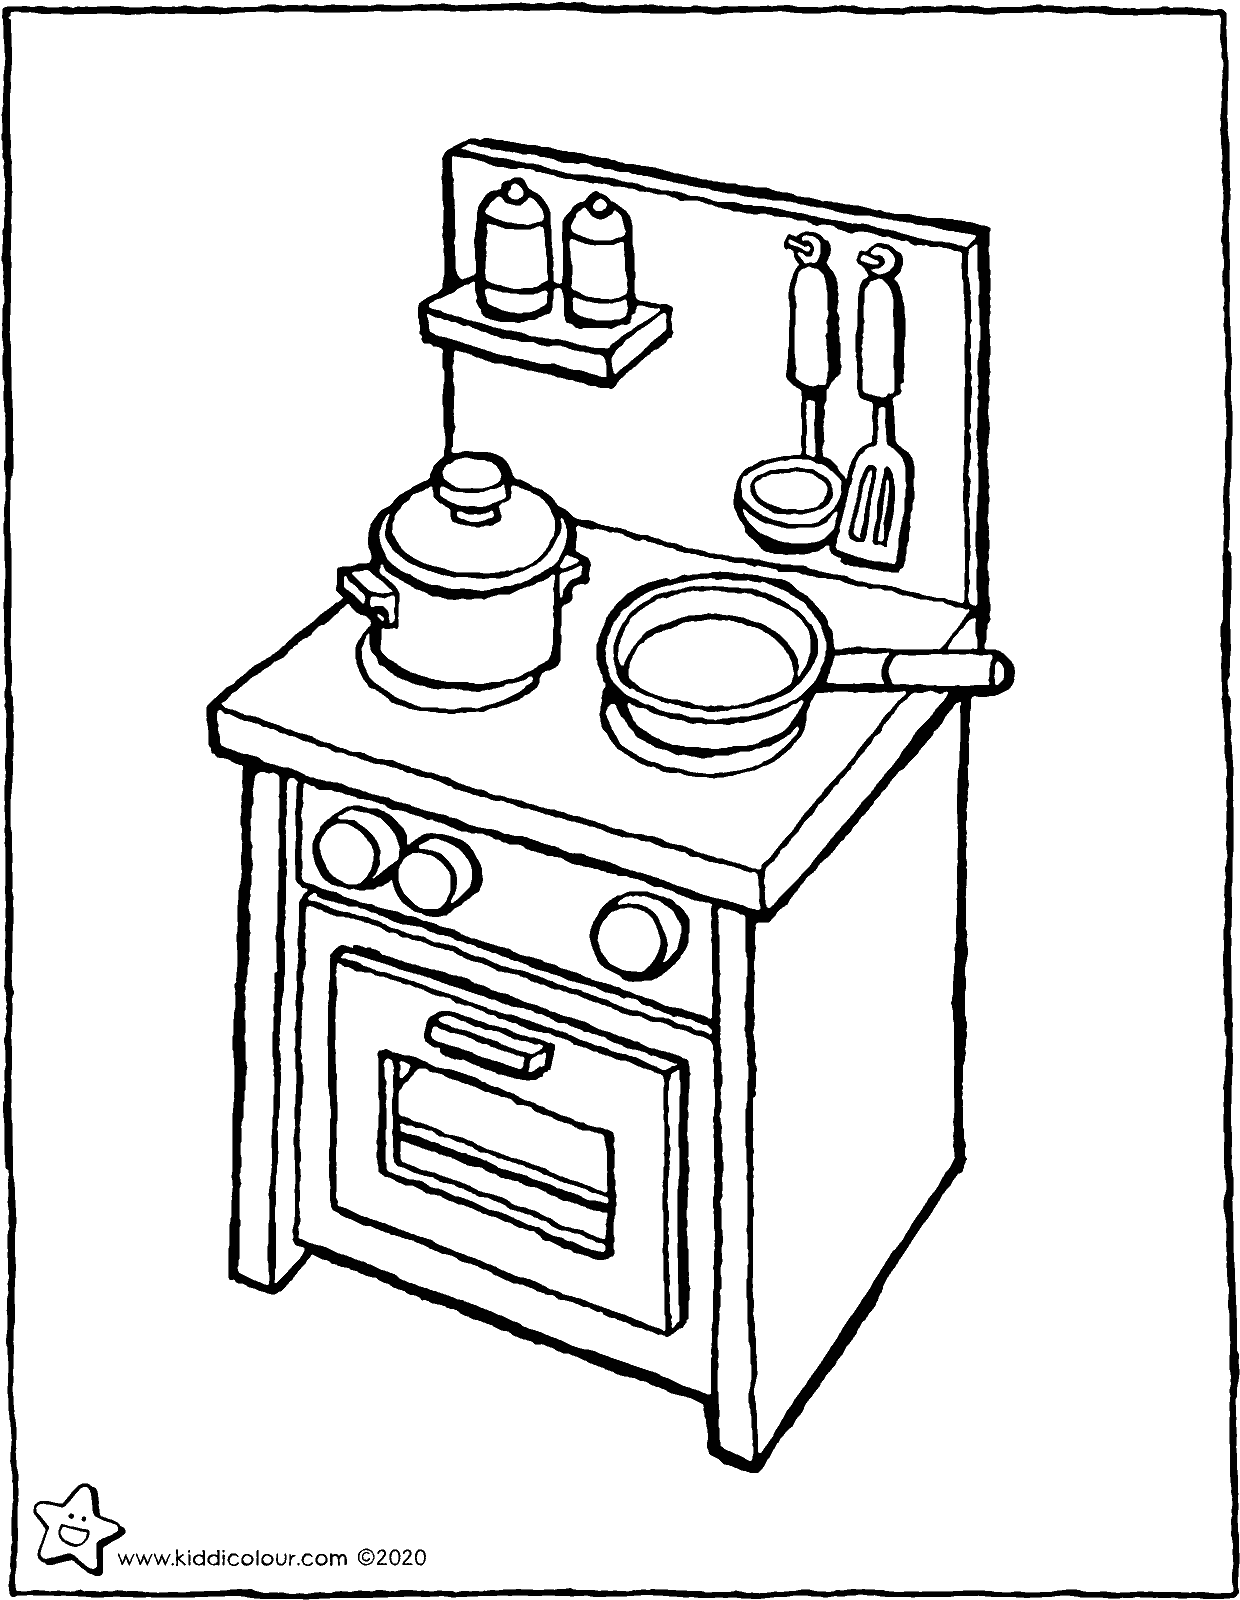 play kitchen colouring page drawing colouring picture 01V